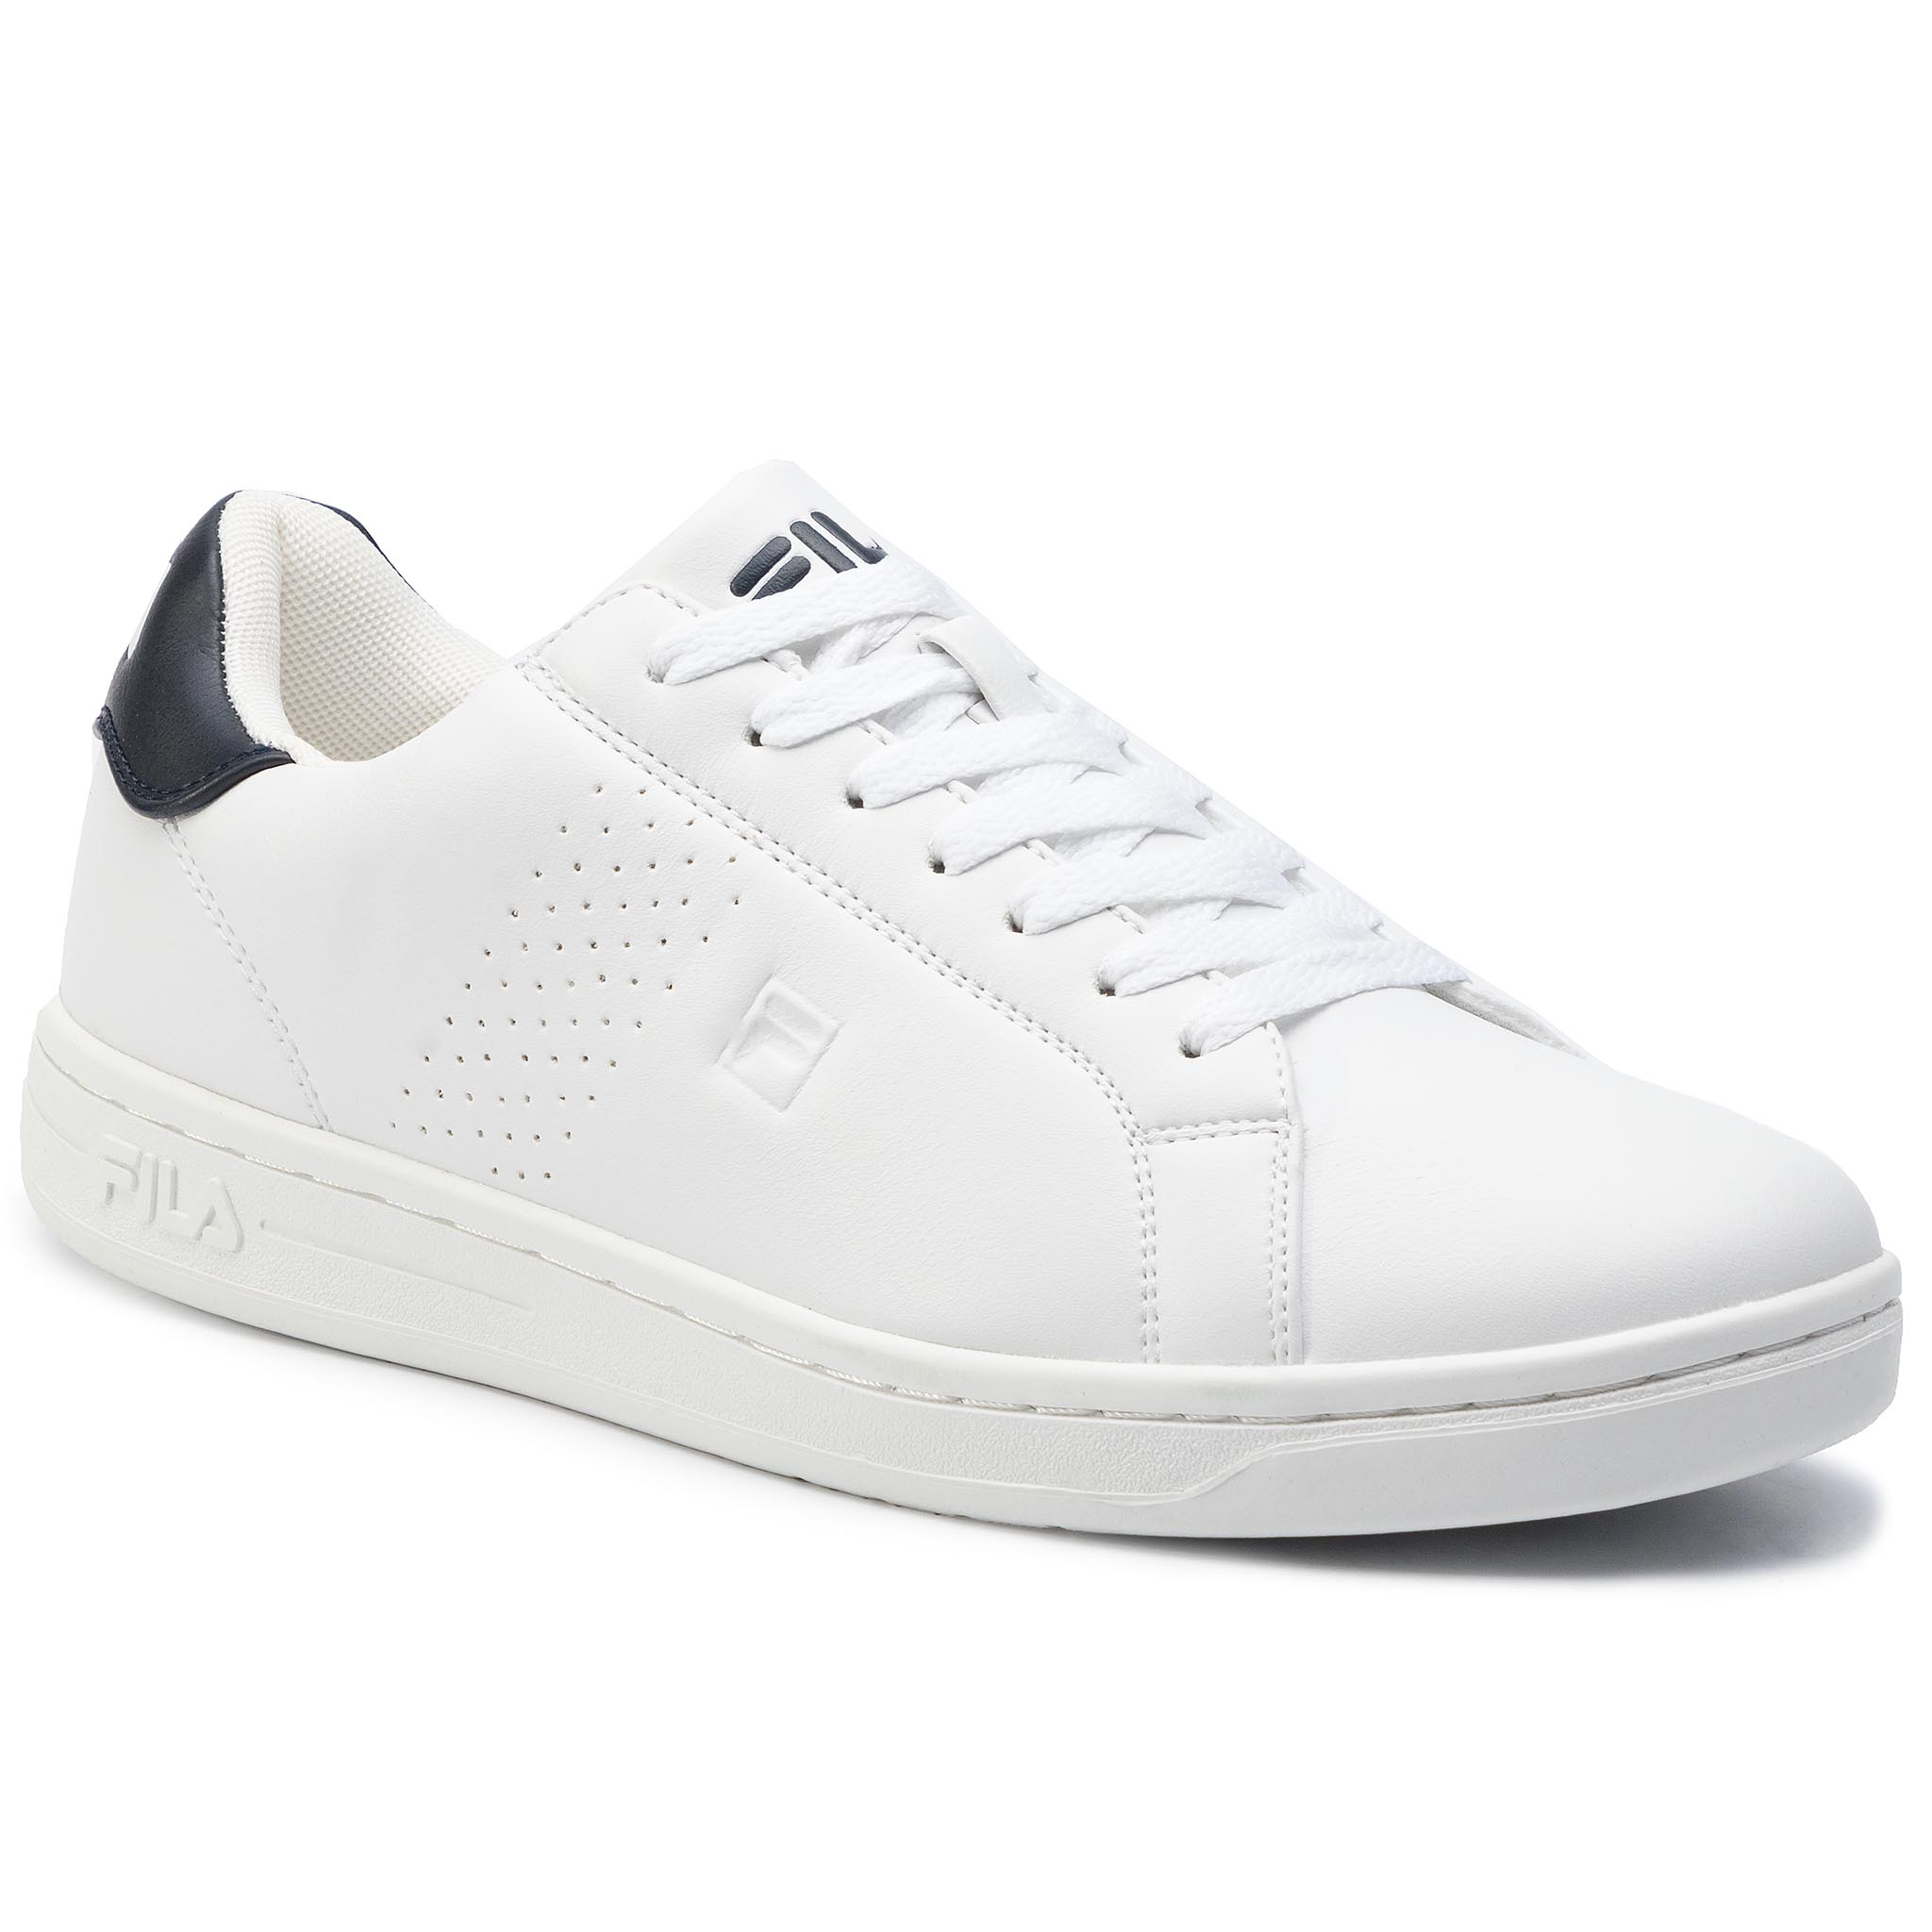 Sneakers FILA - Crosscourt 2 Low 1010274.98F White/Dress Blue